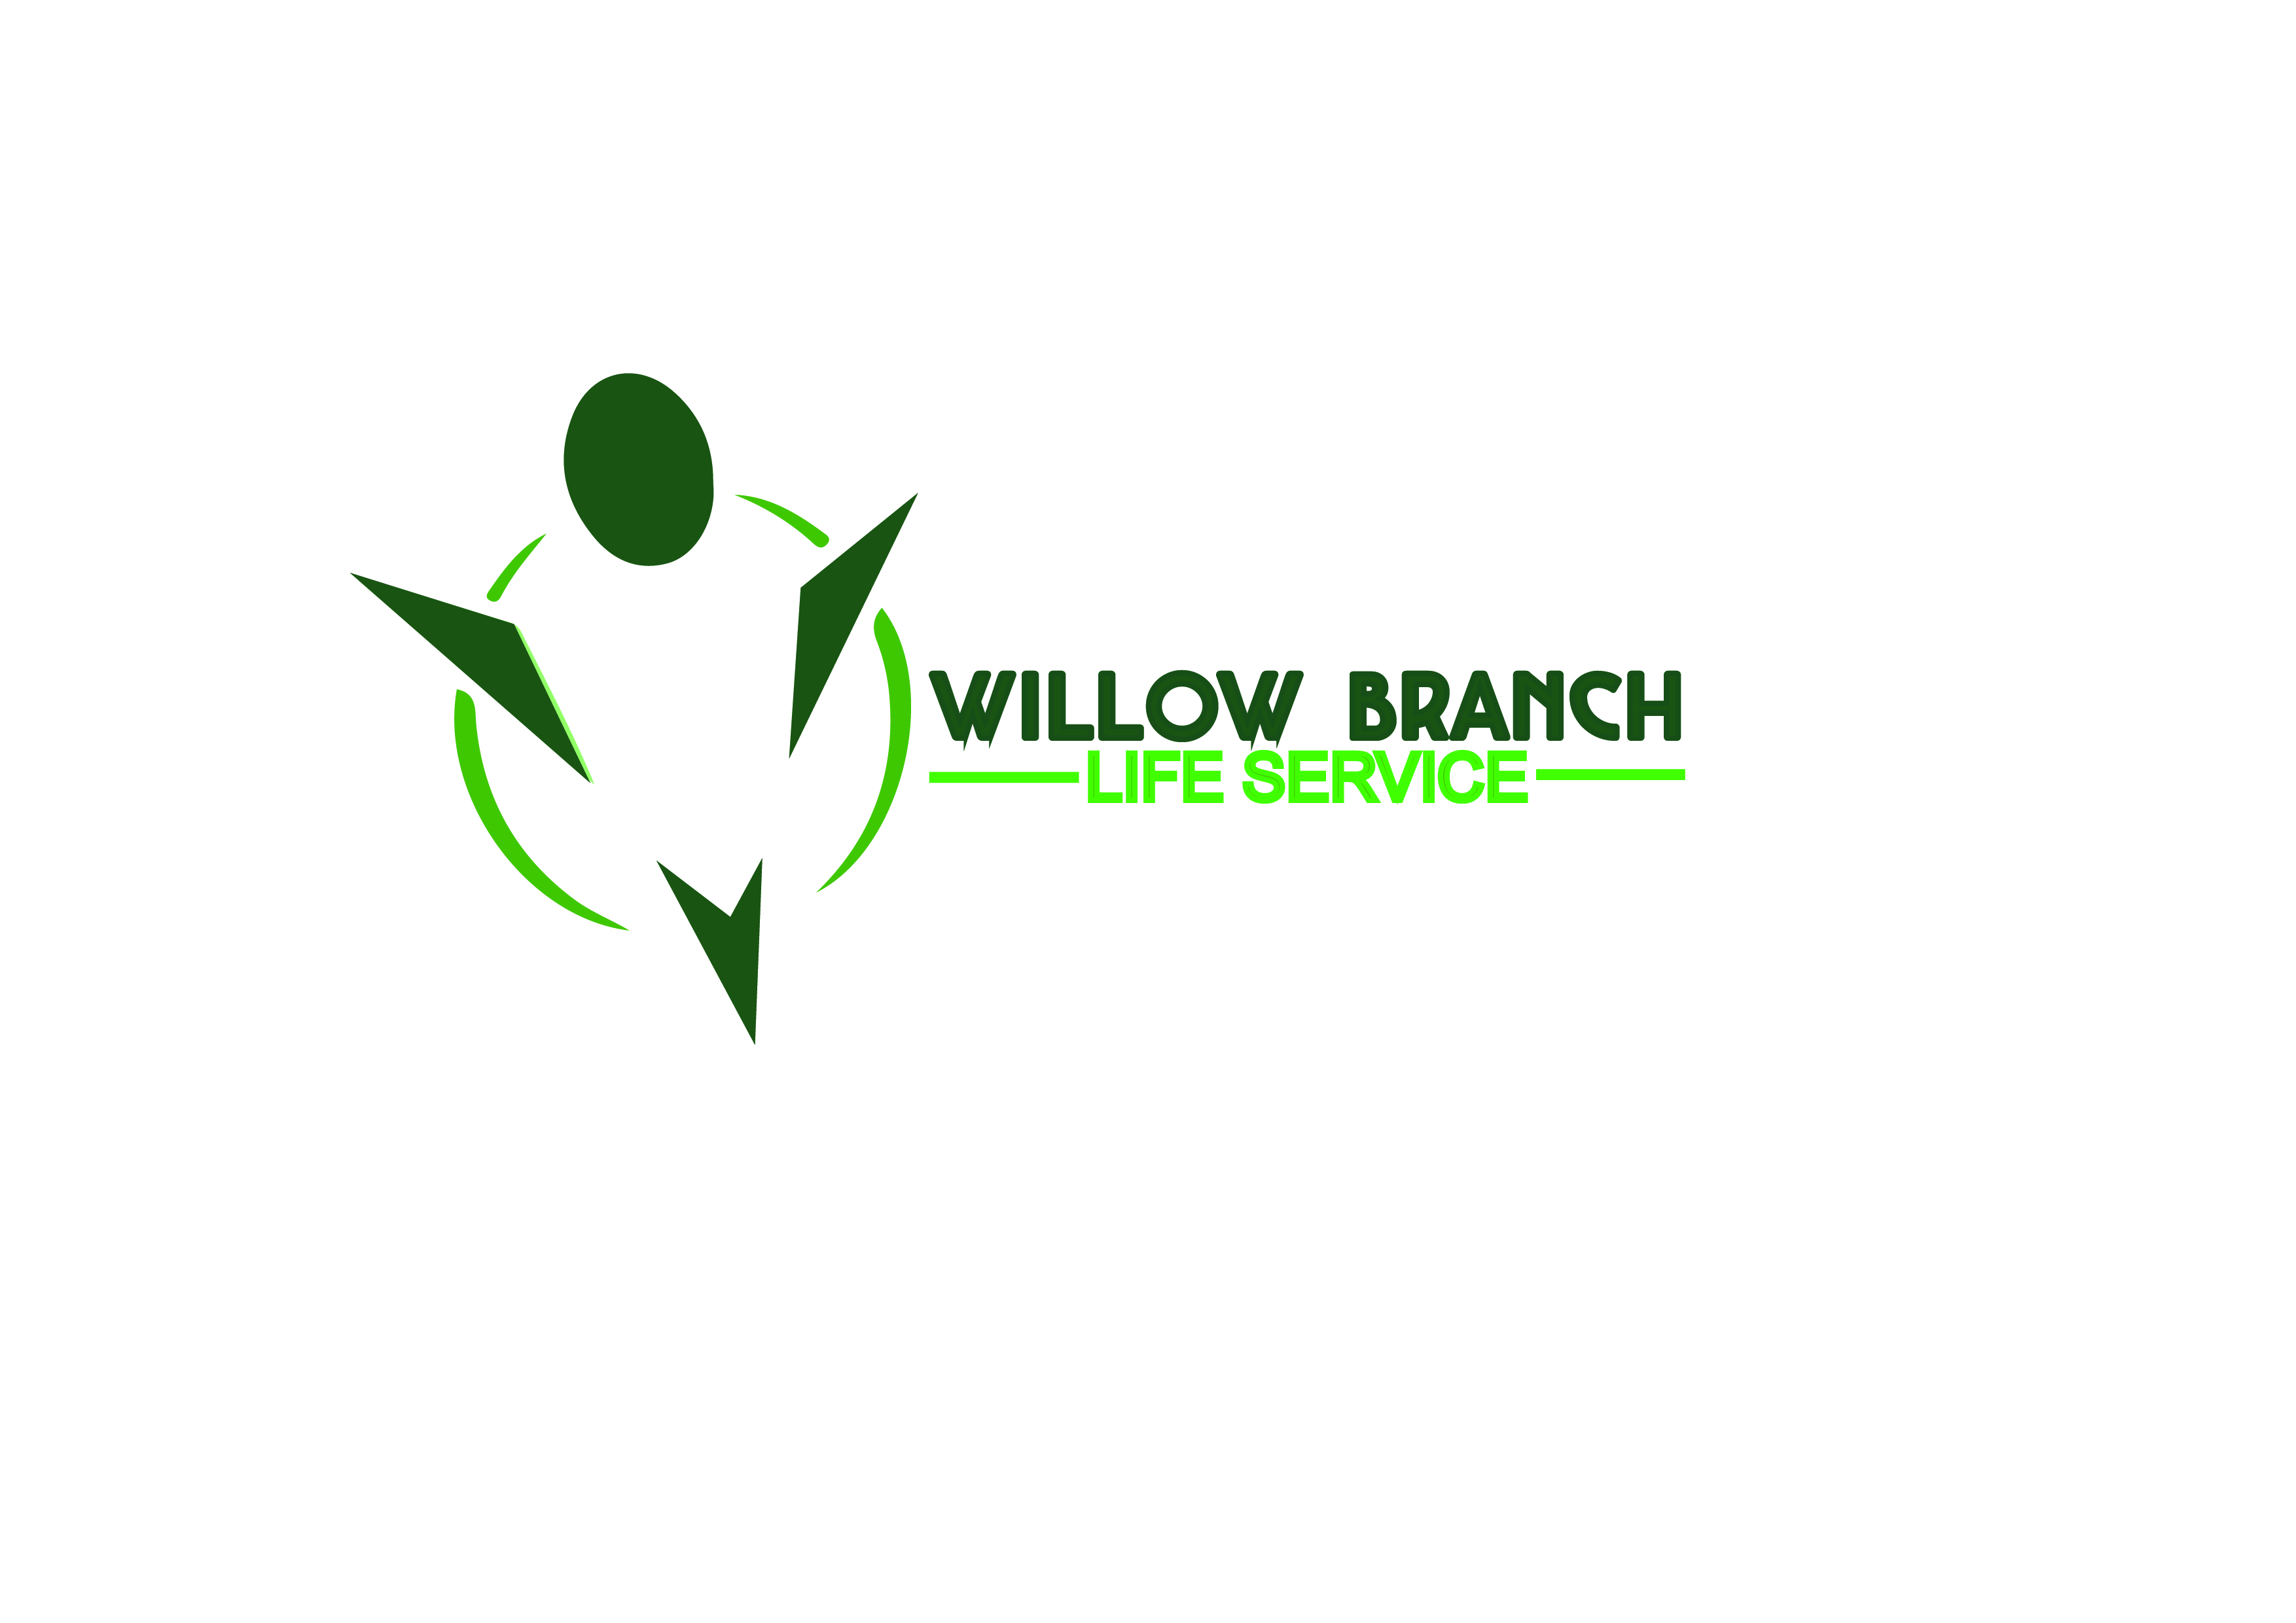 Logo Design by Anum Aamir - Entry No. 6 in the Logo Design Contest Artistic Logo Design for Willow Branch Life Service.